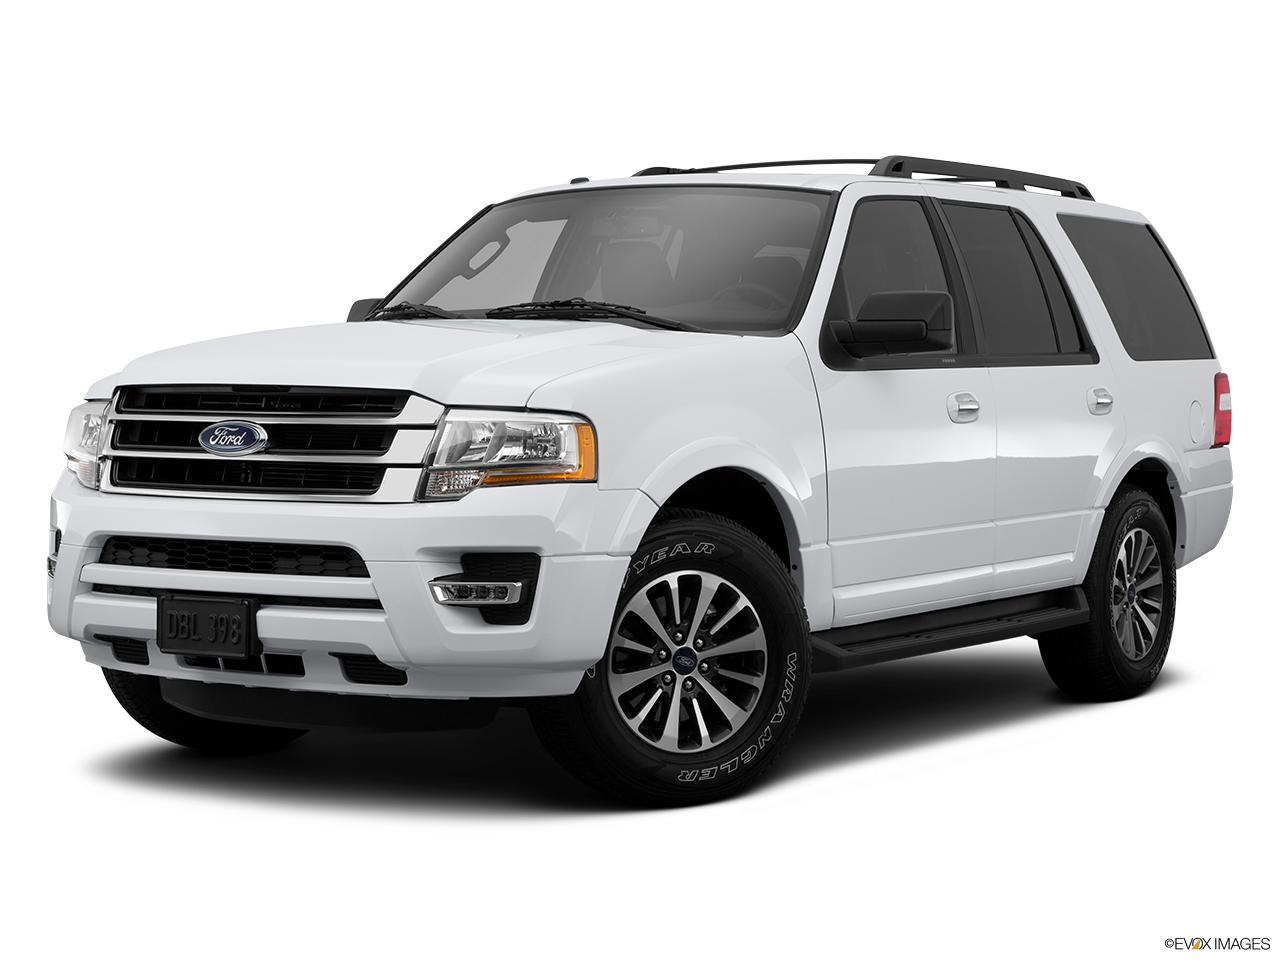 2015 Ford Expedition #17